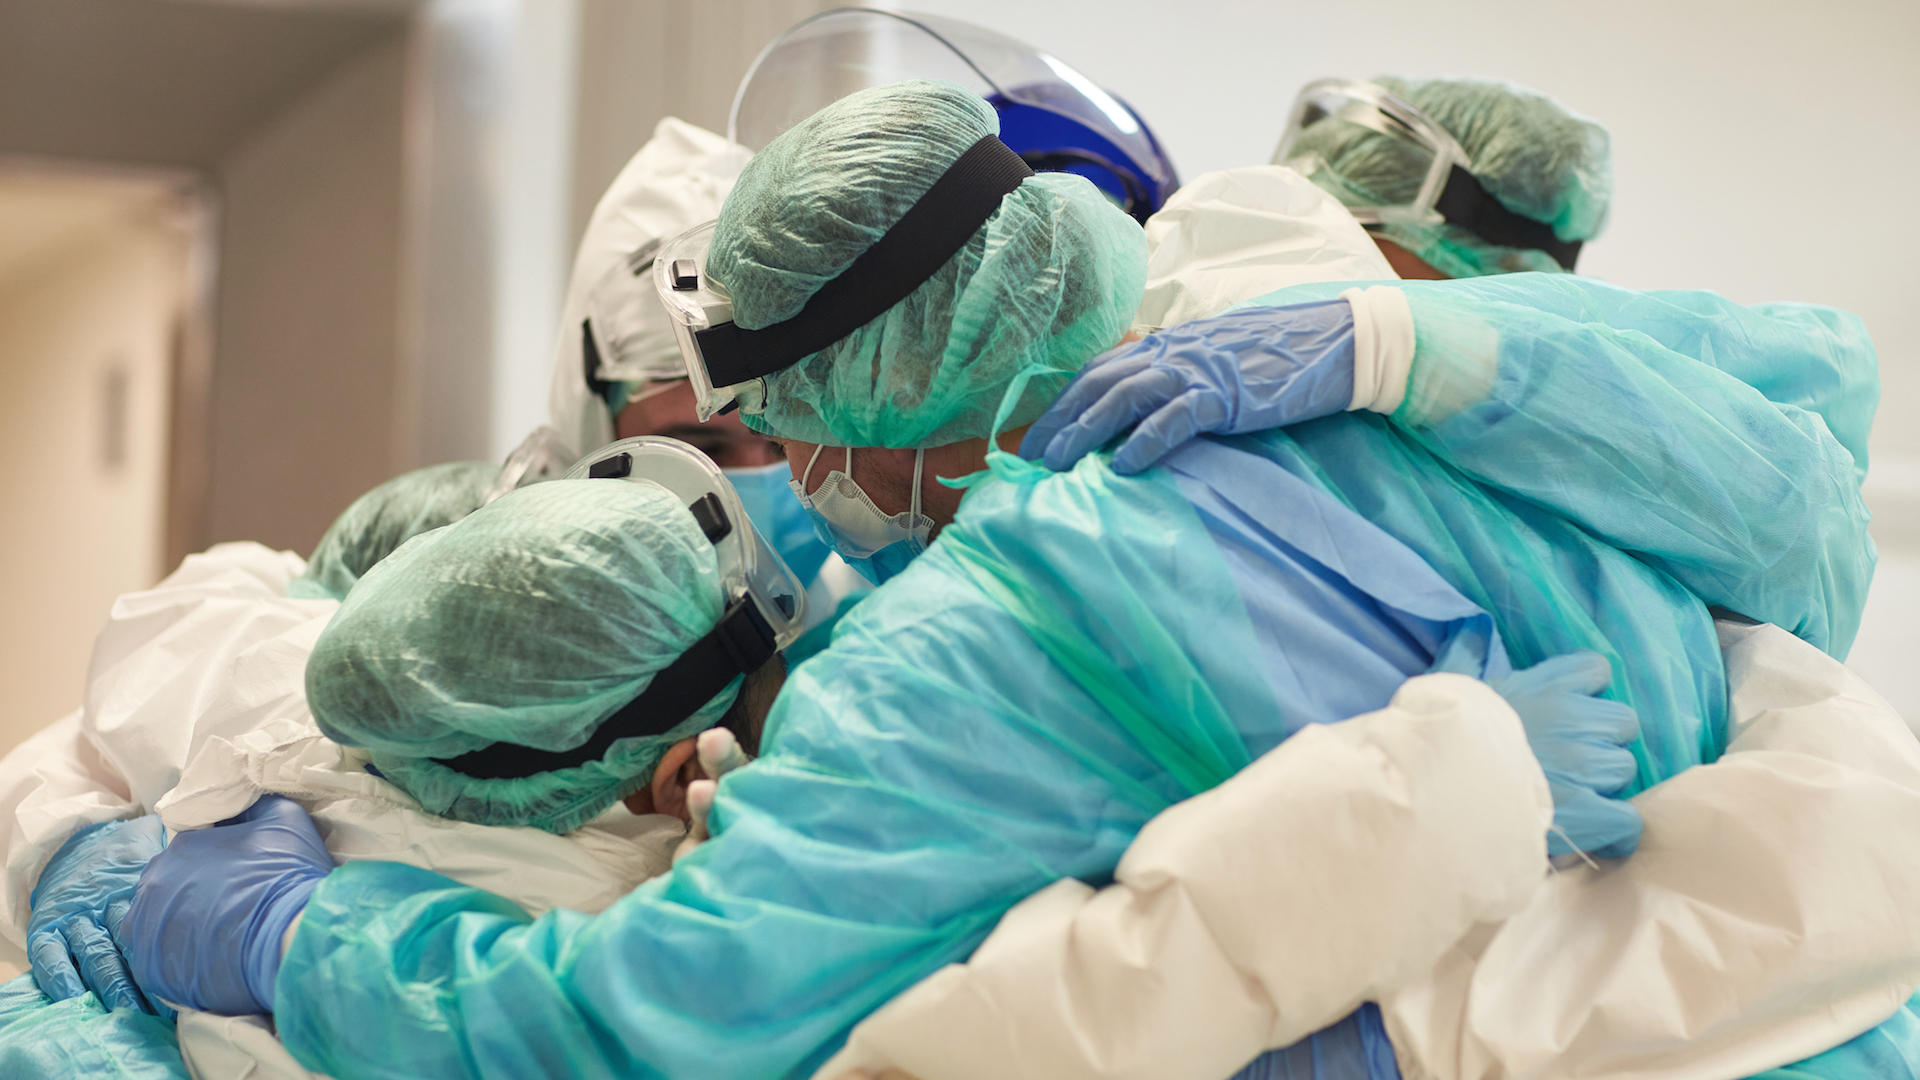 Partial view of hard-working male and female hospital team in full protective wear standing together in group embrace.